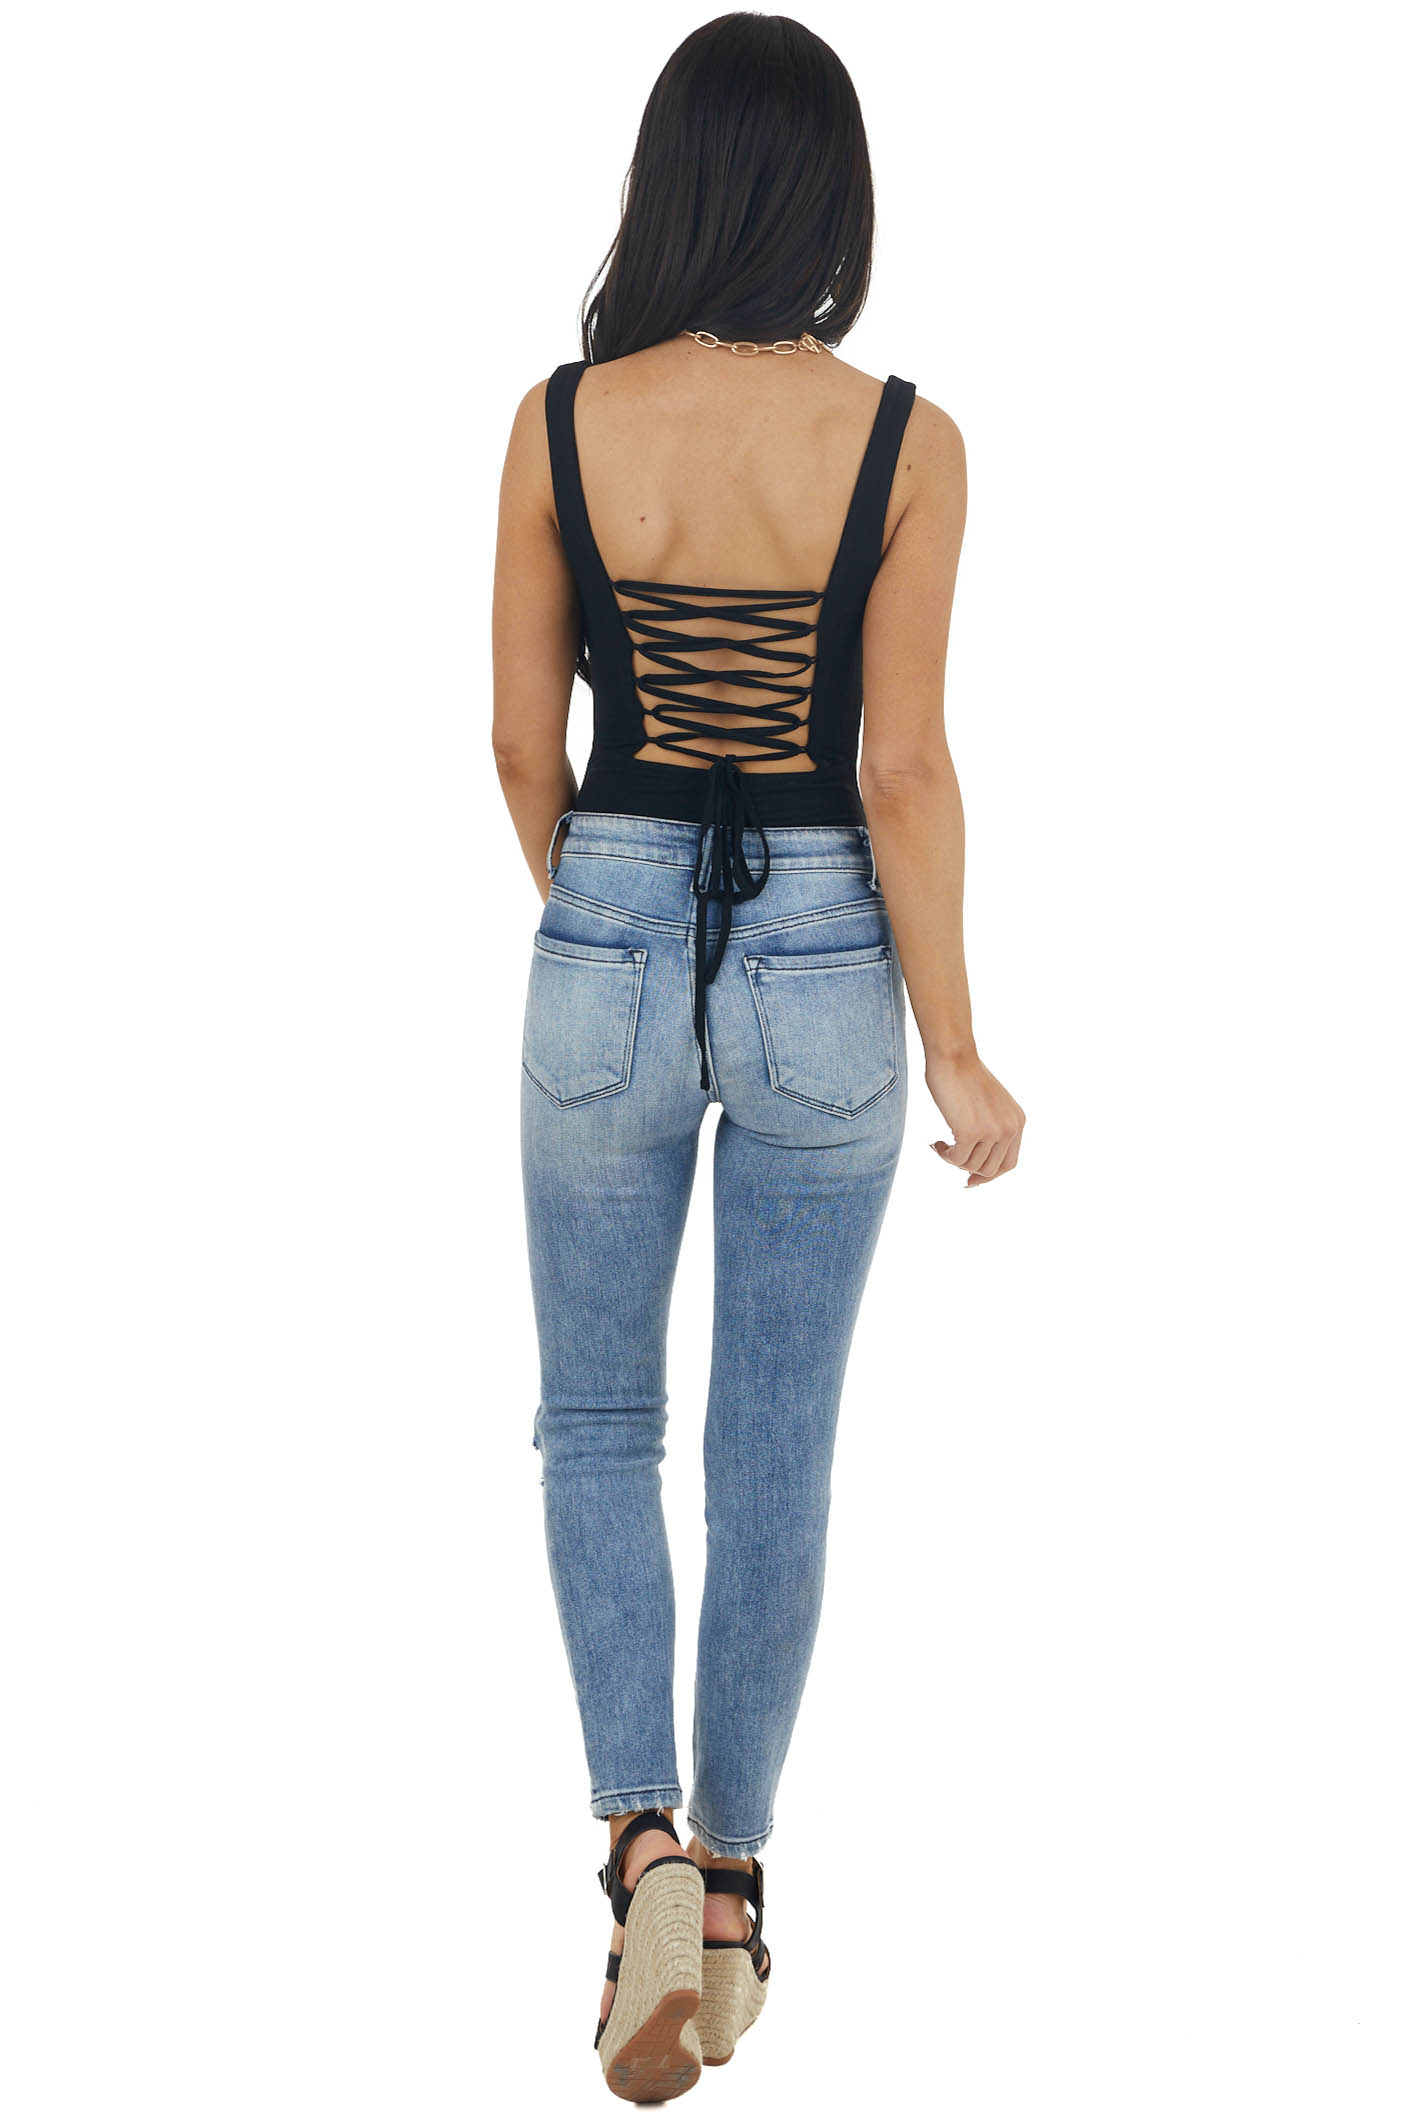 Black Lace Up Back Sleeveless Bodysuit with Square Neckline